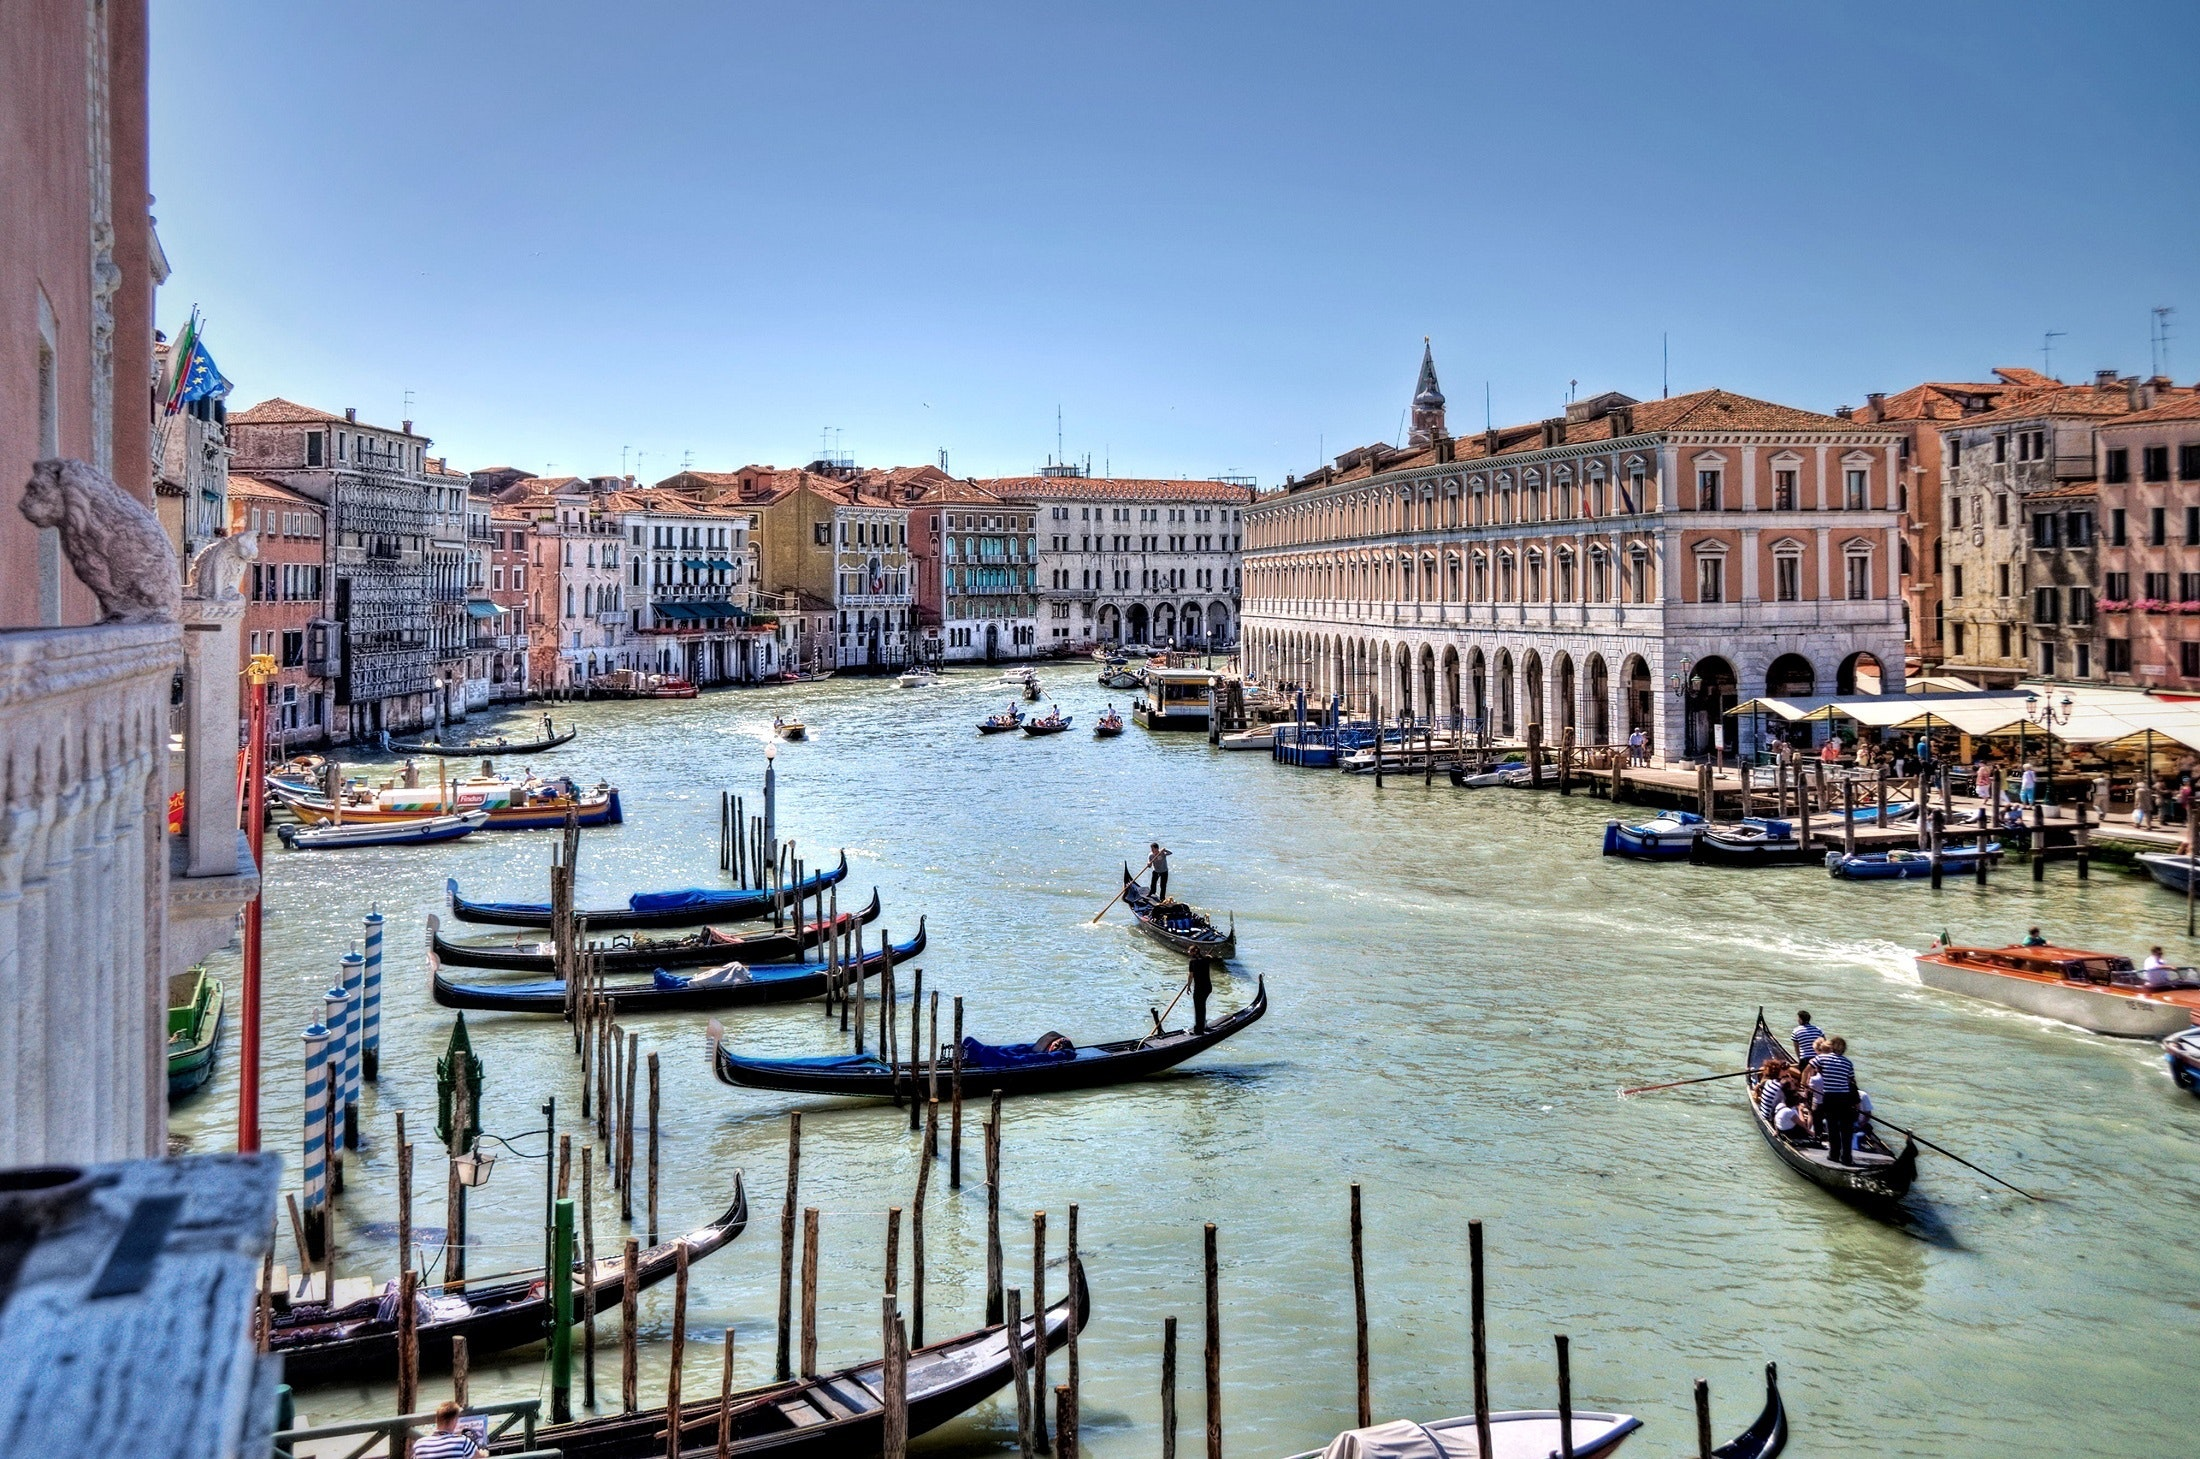 Body of Water With People Rowring on Boat Beside Tall Building, Architecture, Lifestyle, Water, Venice, HQ Photo